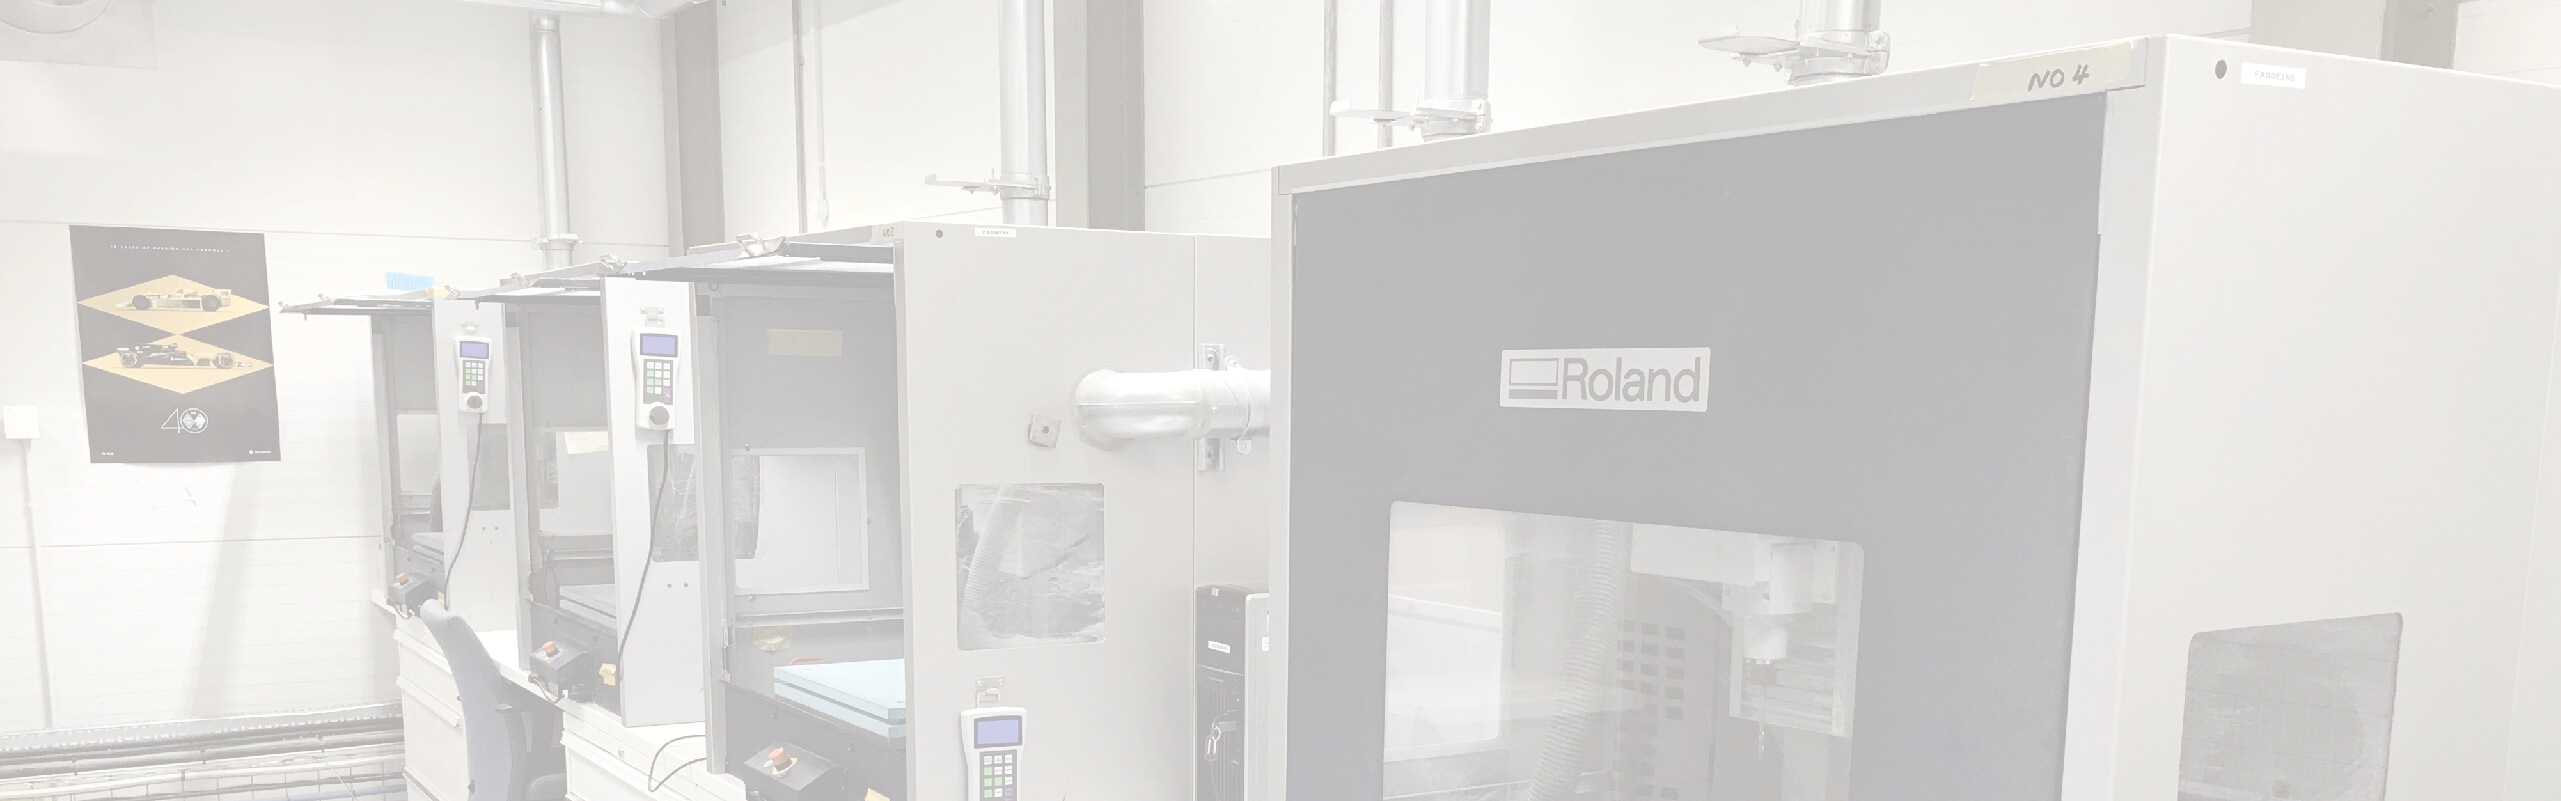 Renault F1 have a range of milling machines including a Roland MDX milling machine.